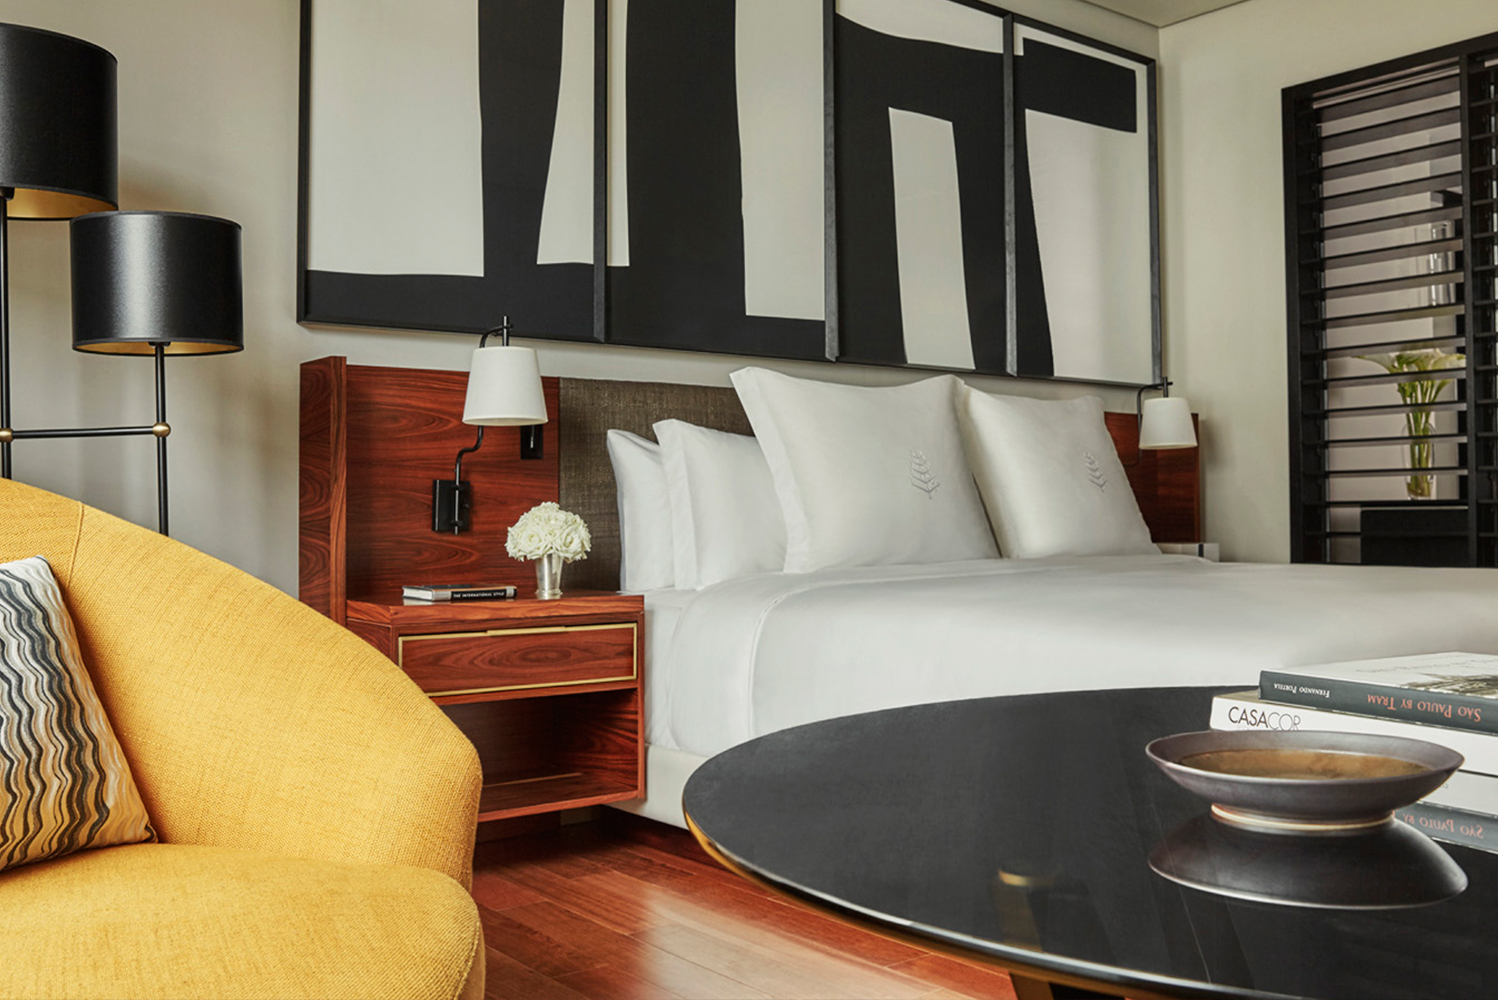 San Francisco-based BAMO was involved in the design of the guestrooms that are reminiscent of a private home.